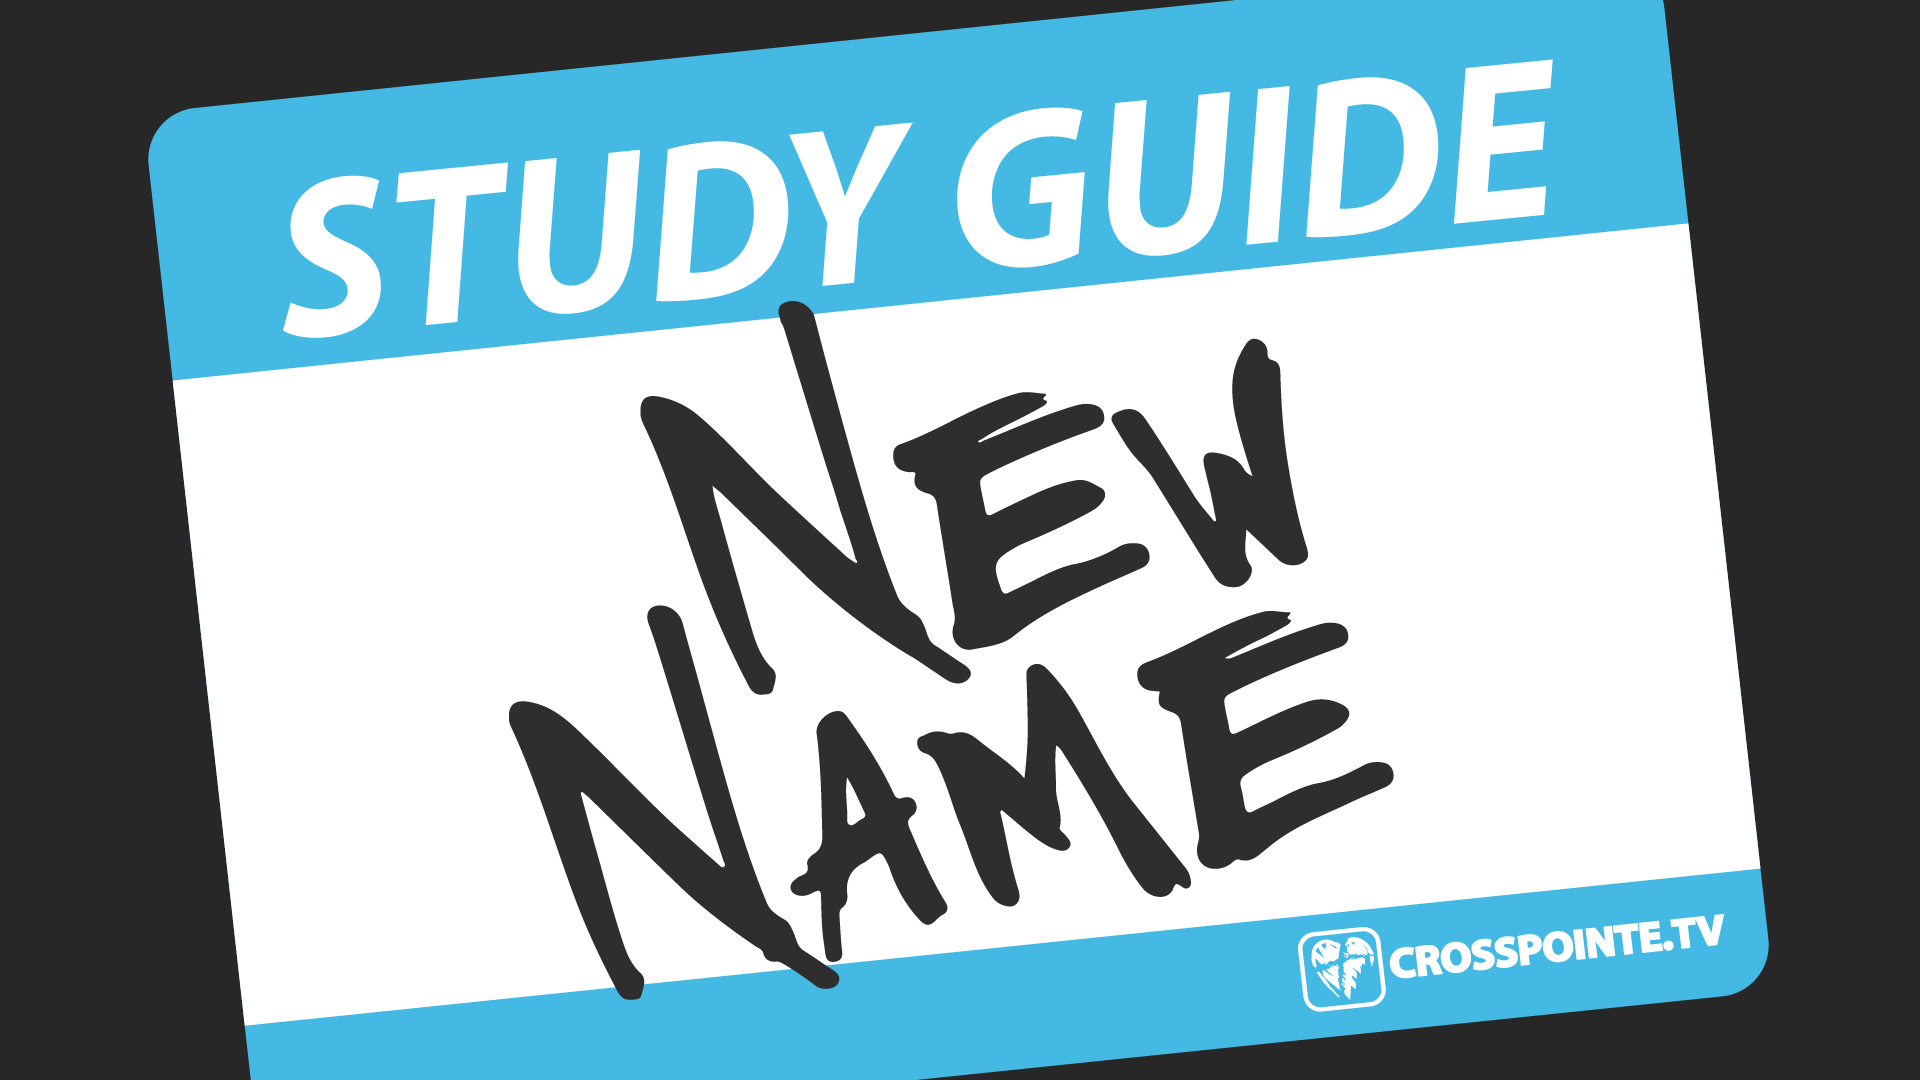 Download the Study Guide here!